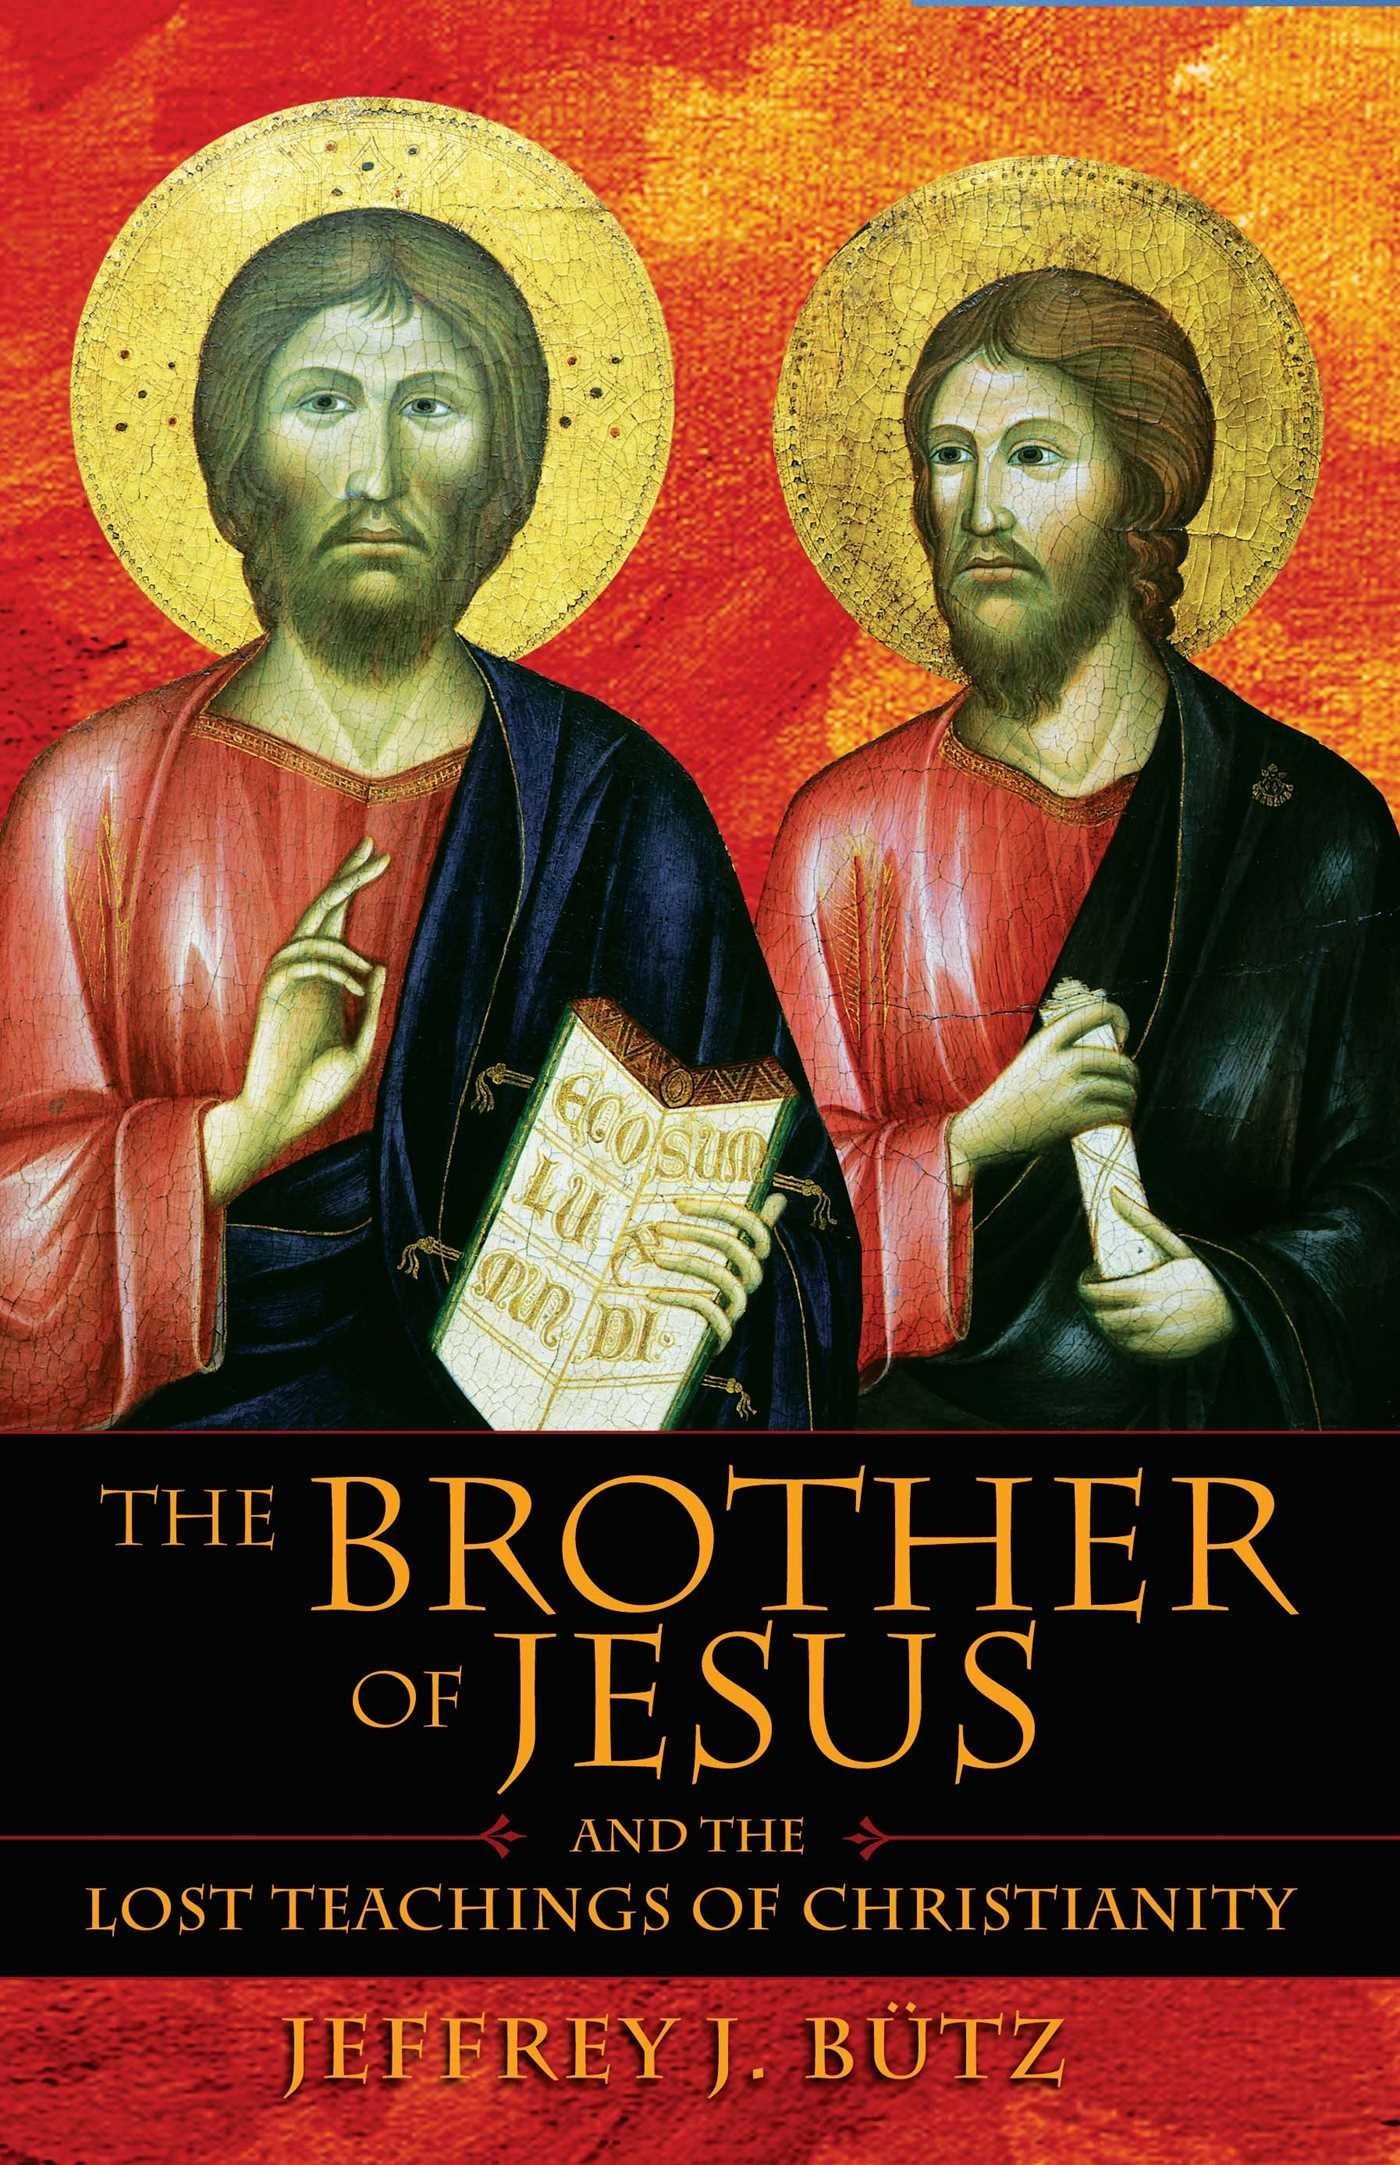 The brother of jesus and the lost teachings of christianity jeffrey the brother of jesus and the lost teachings of christianity jeffrey j btz 9781594770432 amazon books fandeluxe Choice Image